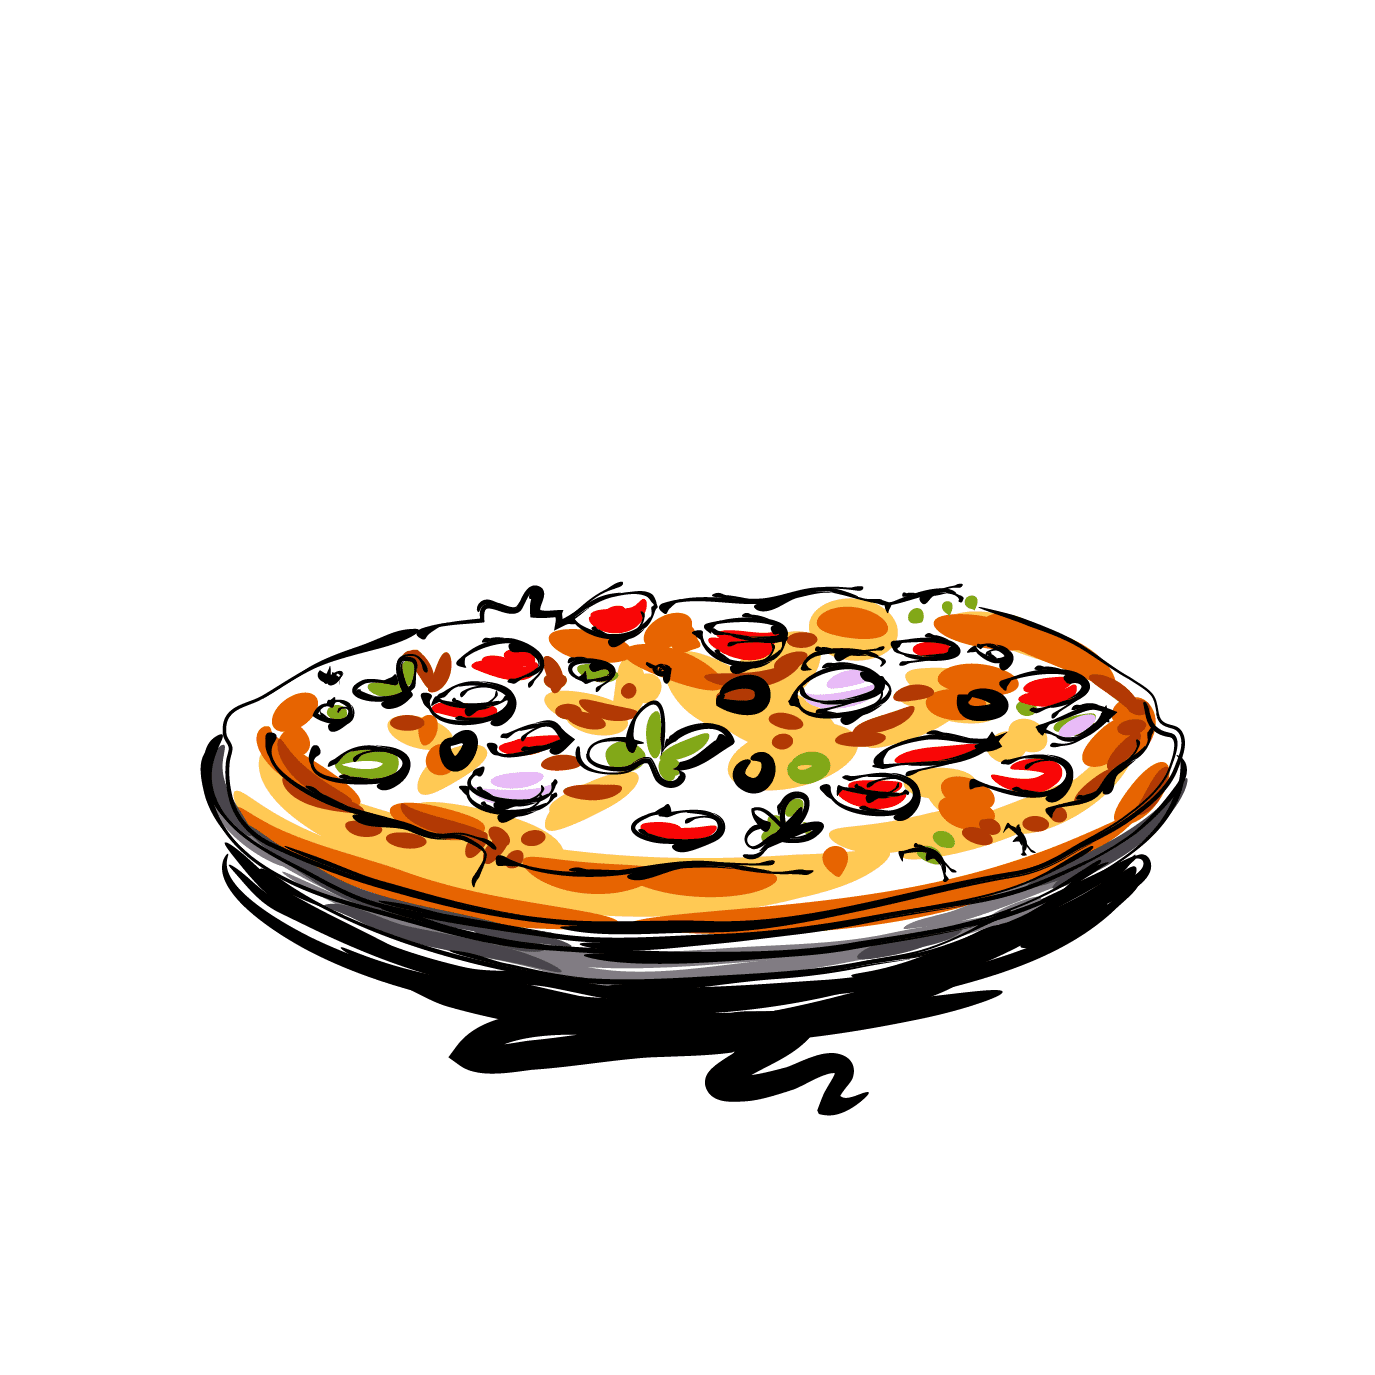 grab a famous thin crust pizza from pizza king